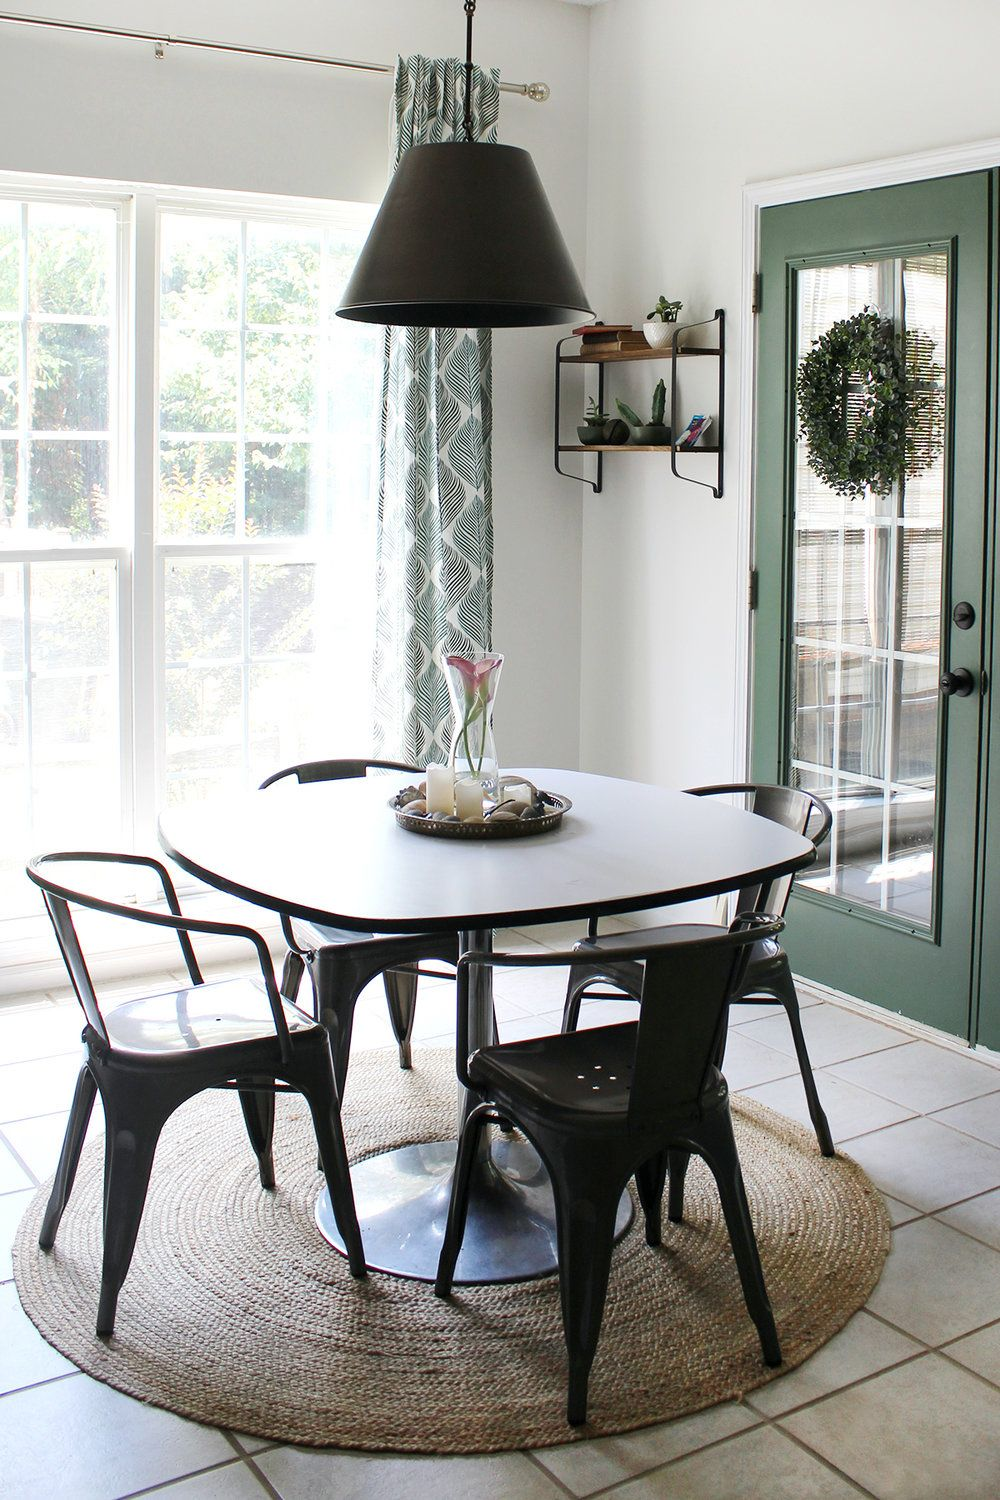 A Round Rug Roundup With Images Dining Rug Round Kitchen Rugs